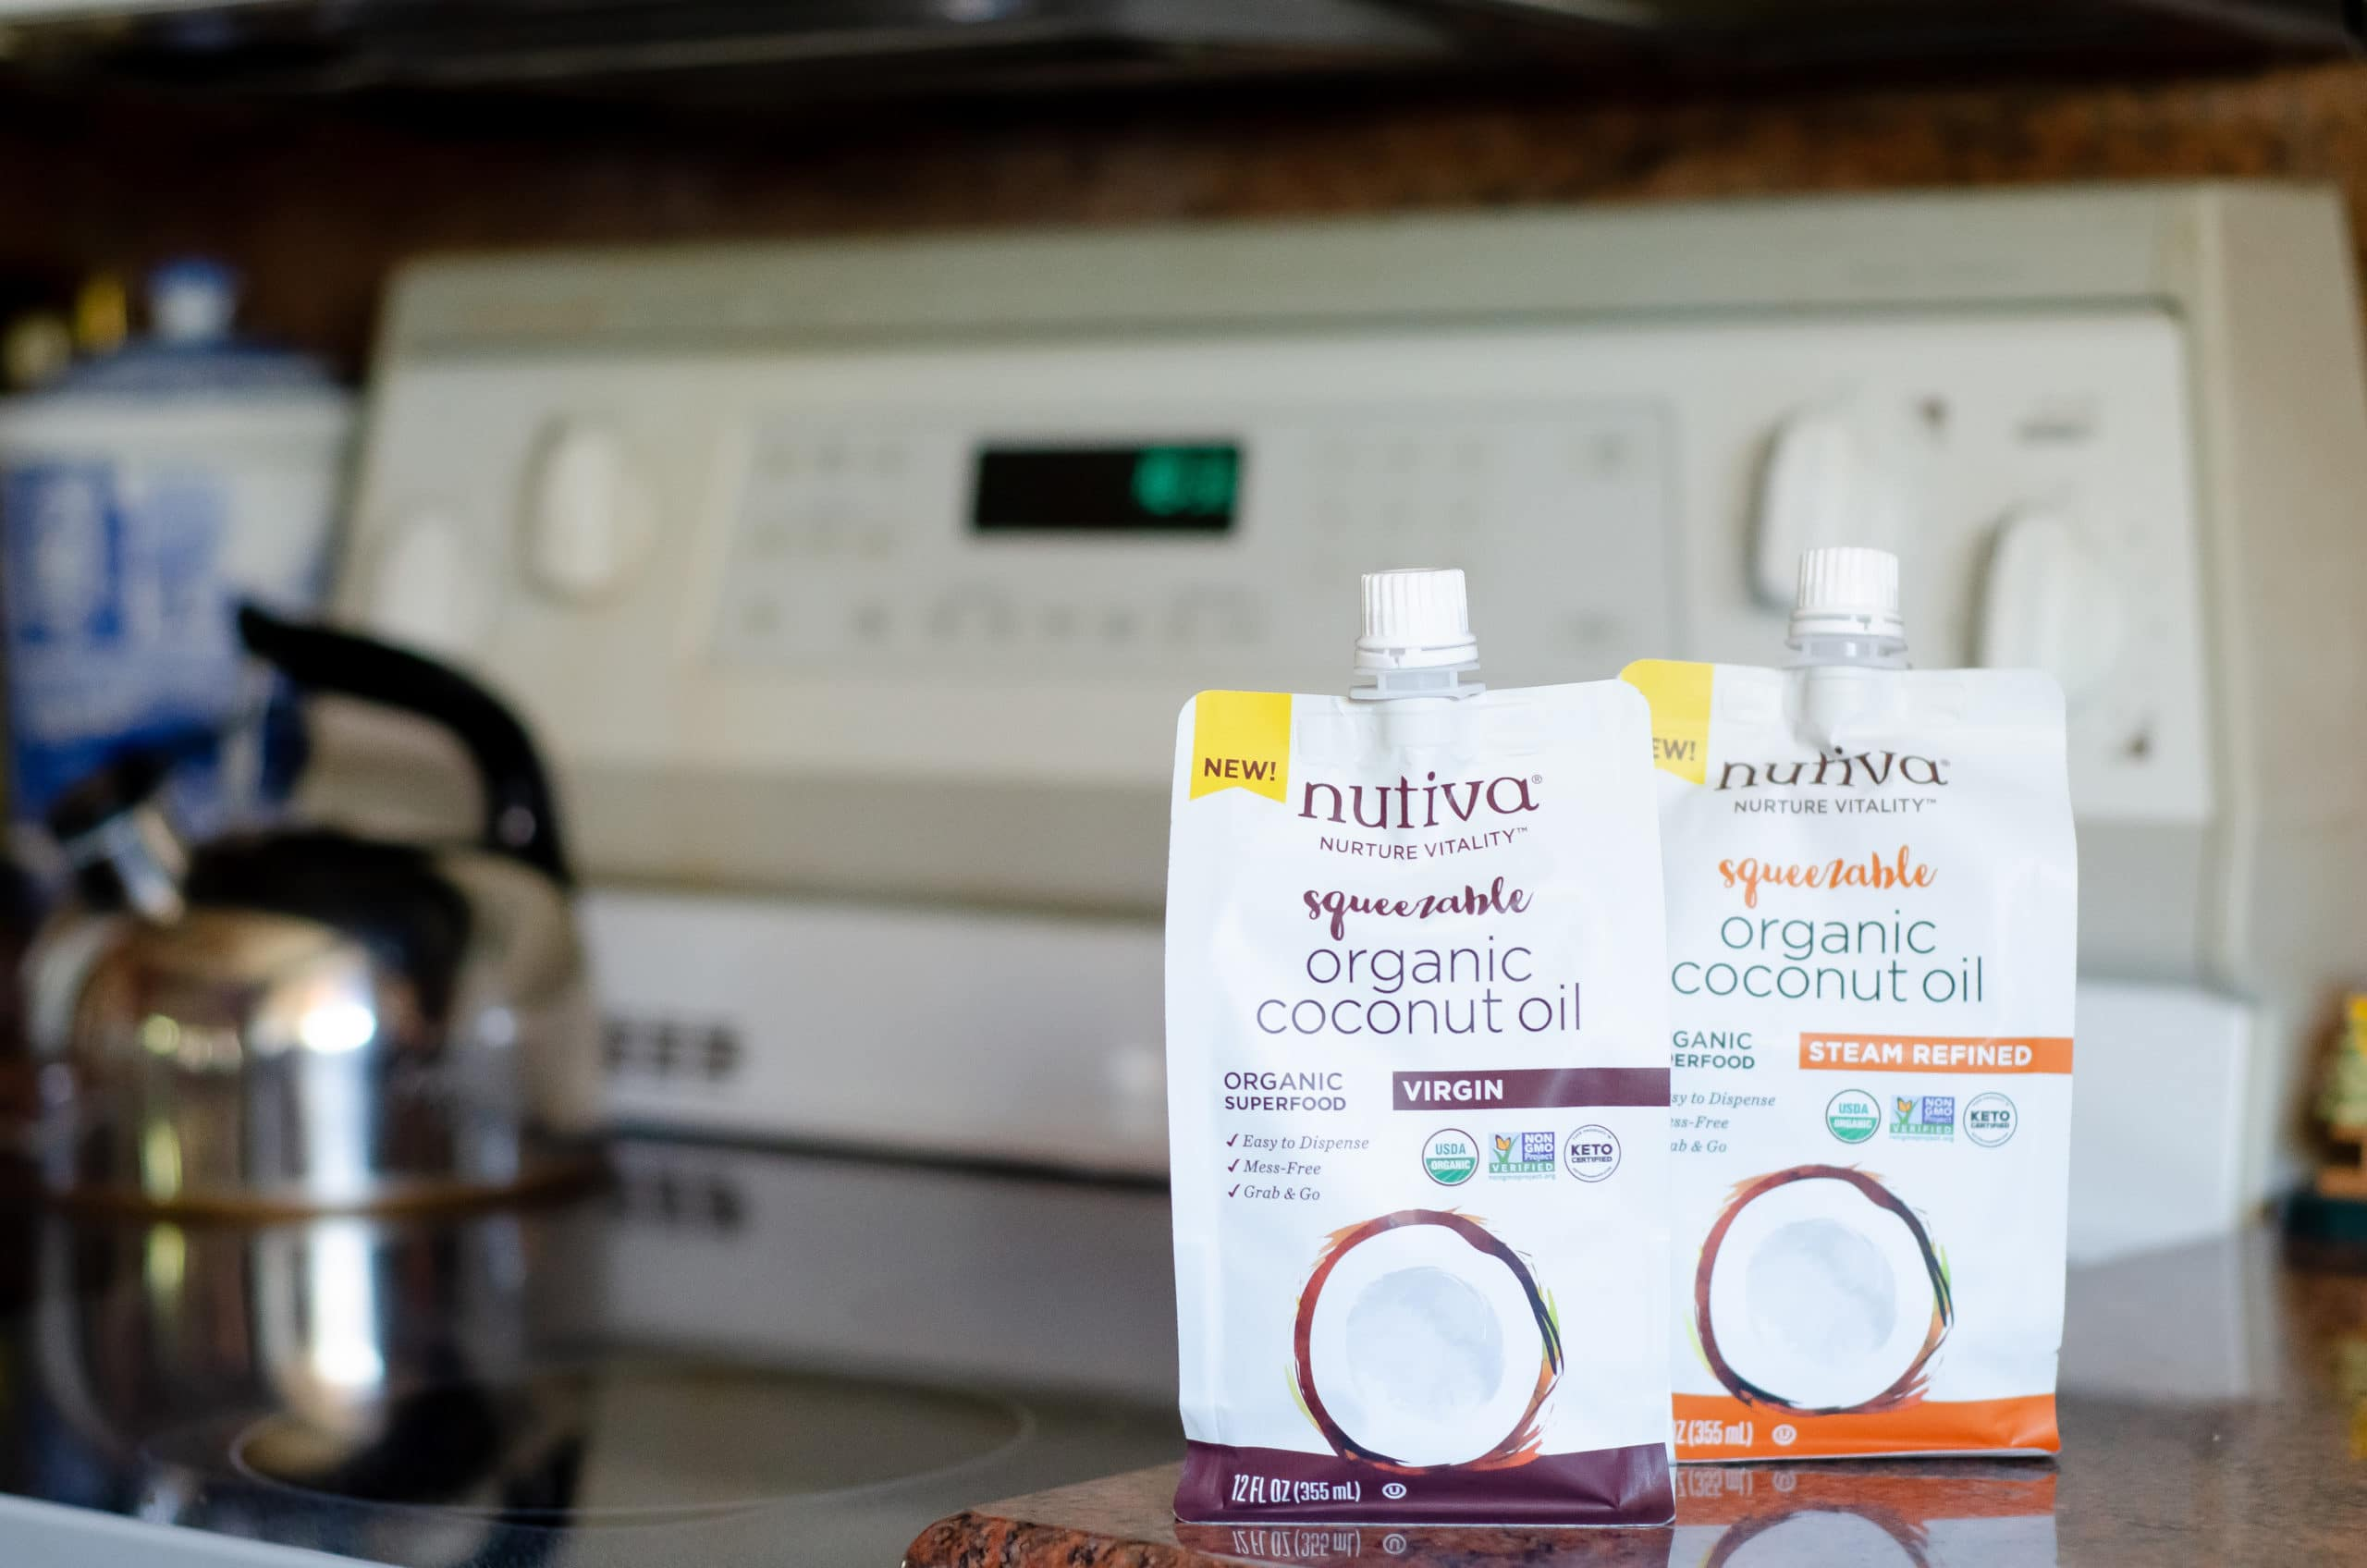 Nutiva Squeezable Organic Coconut Oil. Gift your hostess a Thanksgiving themed box of goodies. Gift them products they can use on Thanksgiving Day as well as after.